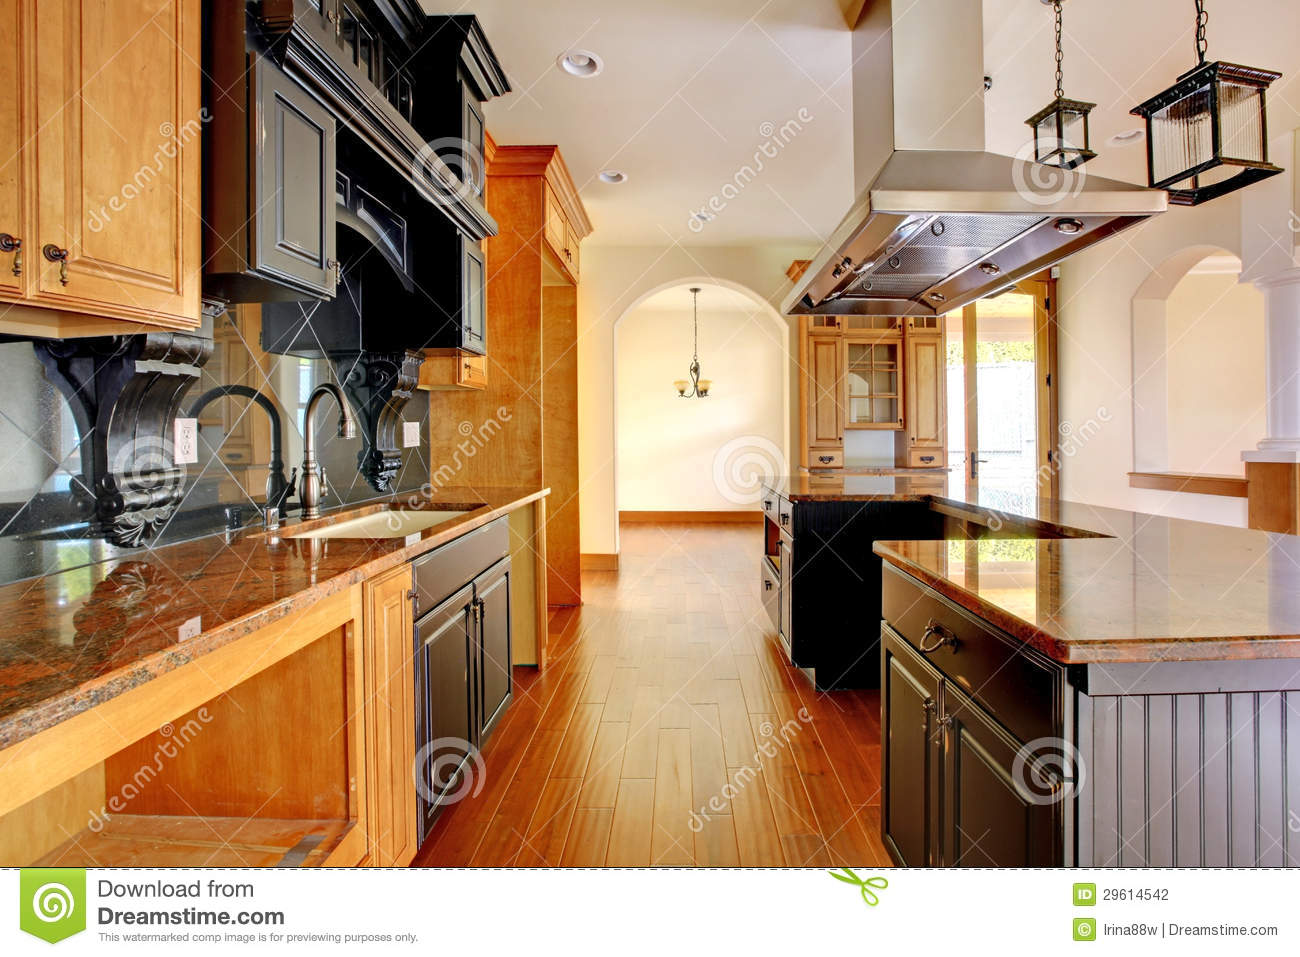 New Construction Luxury Home Interior Kitchen With